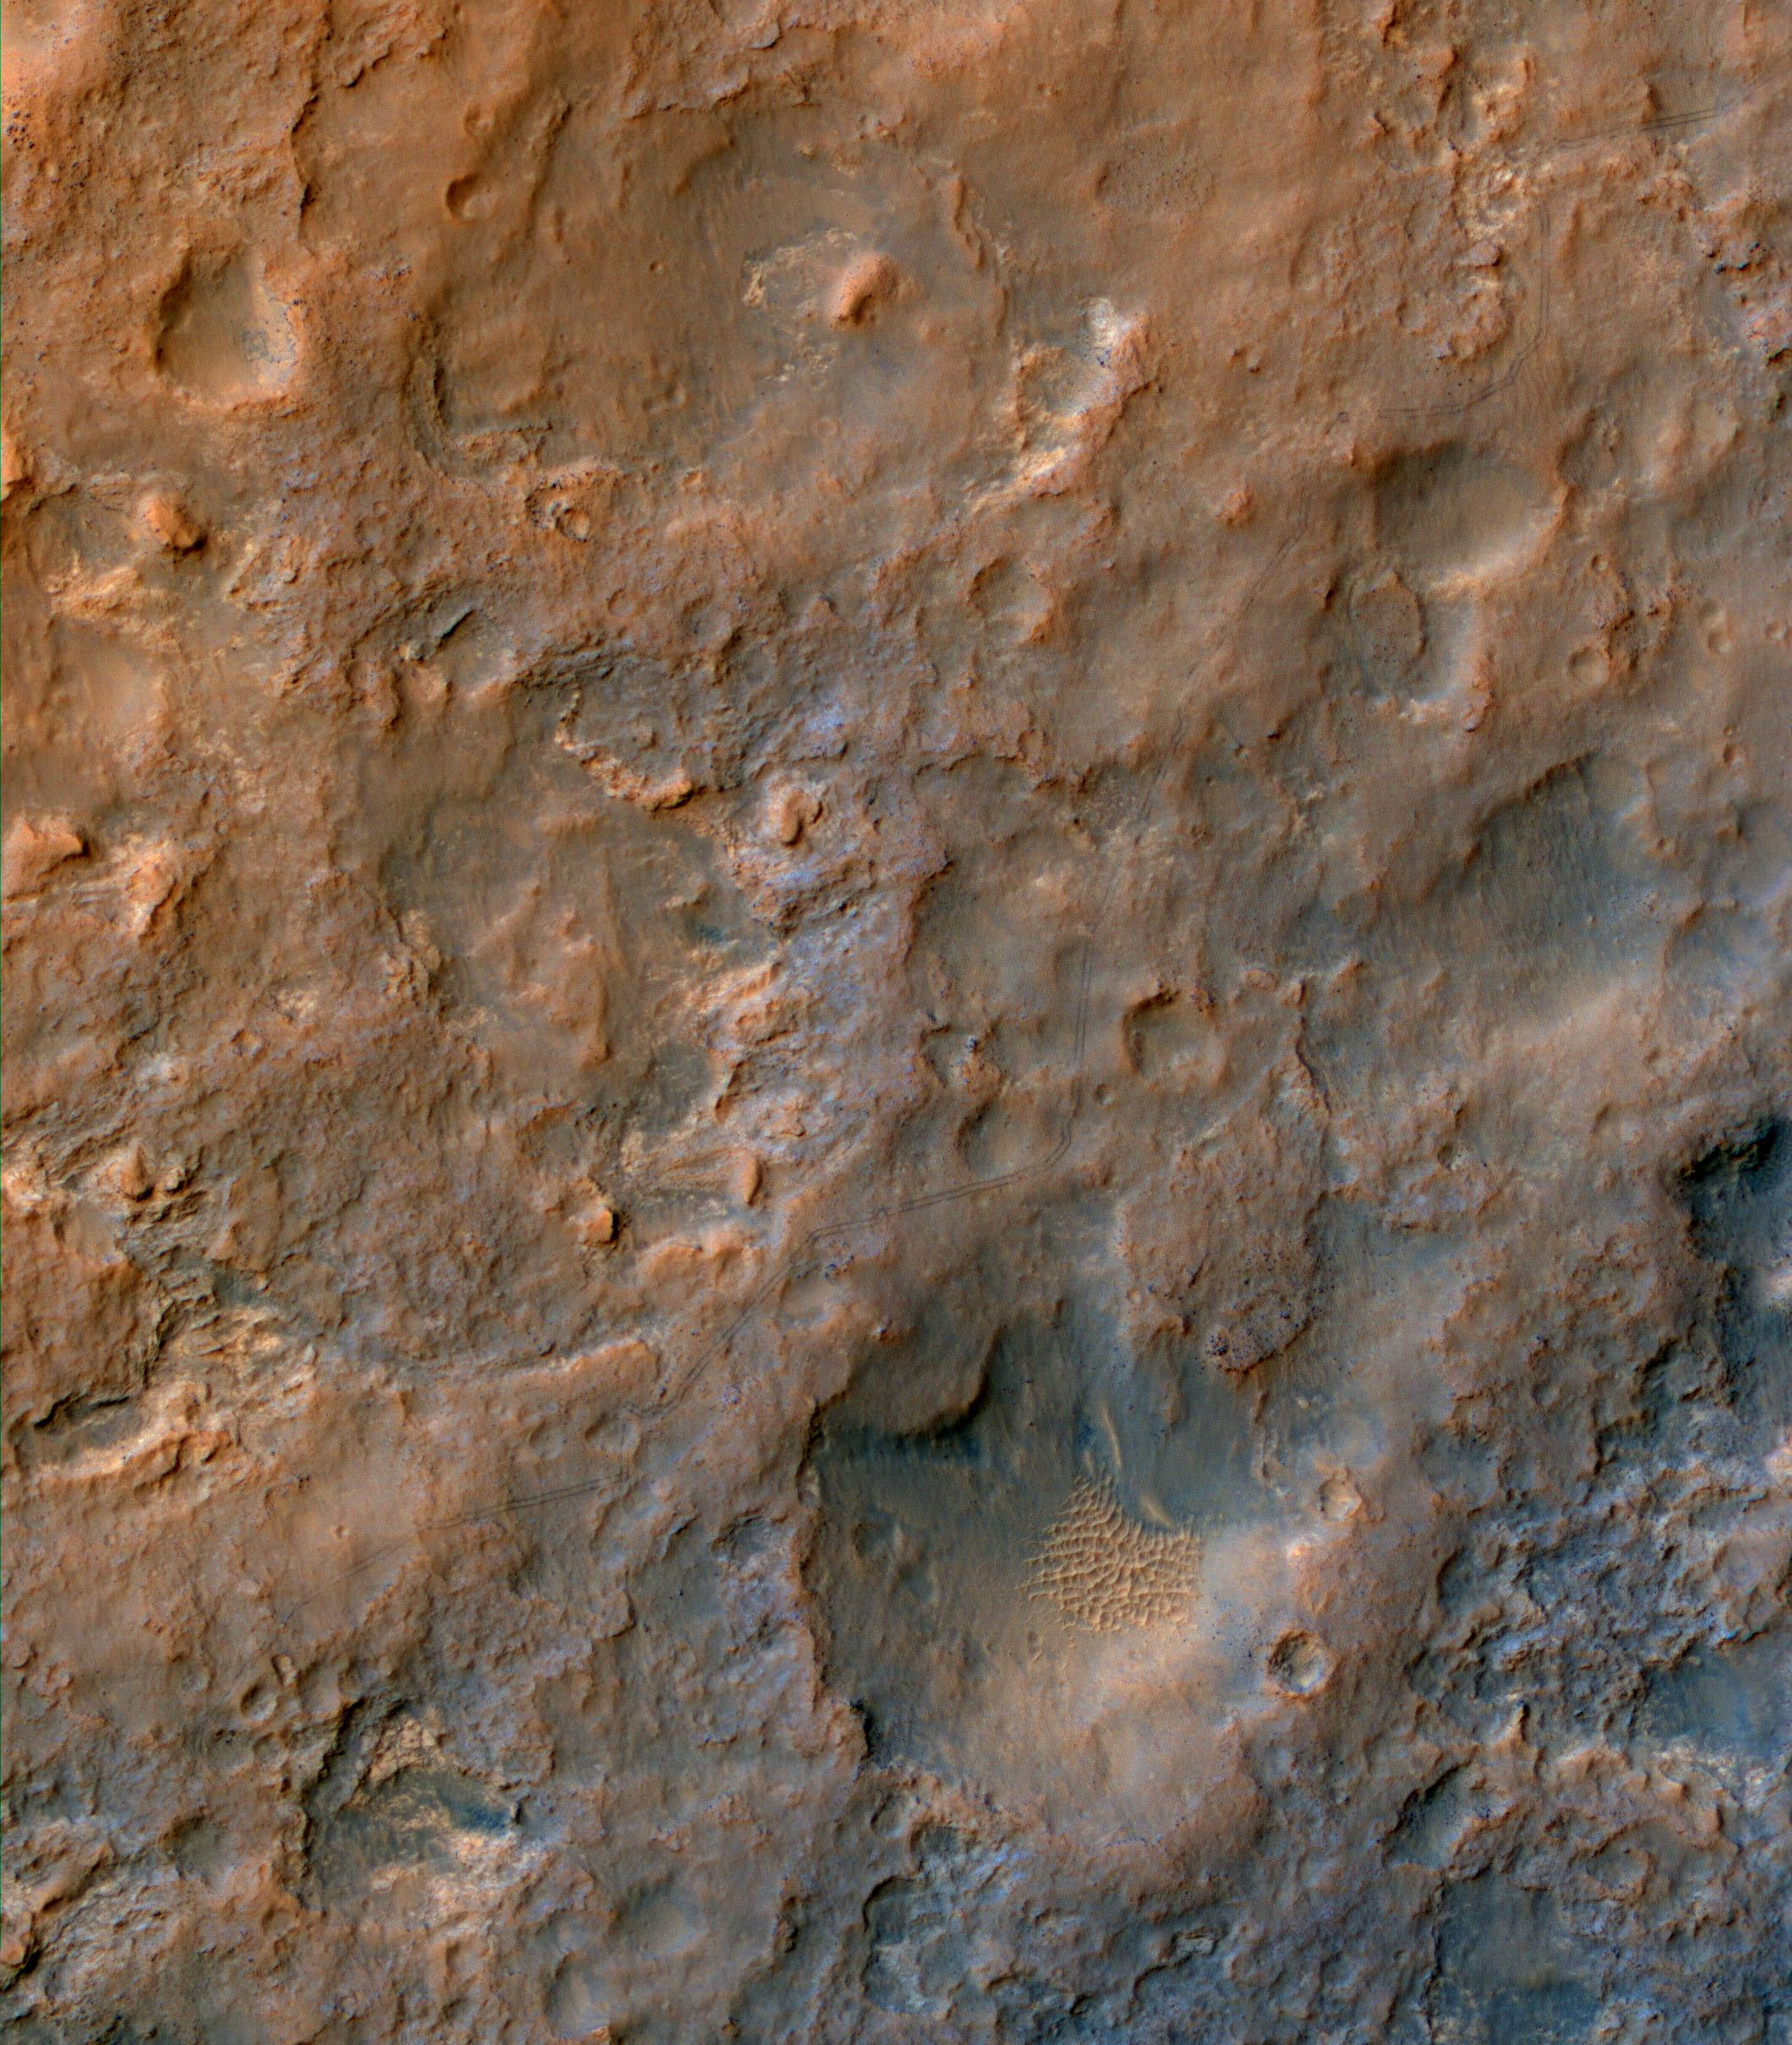 pia17754_hirise_of_tracks_dec2013_0